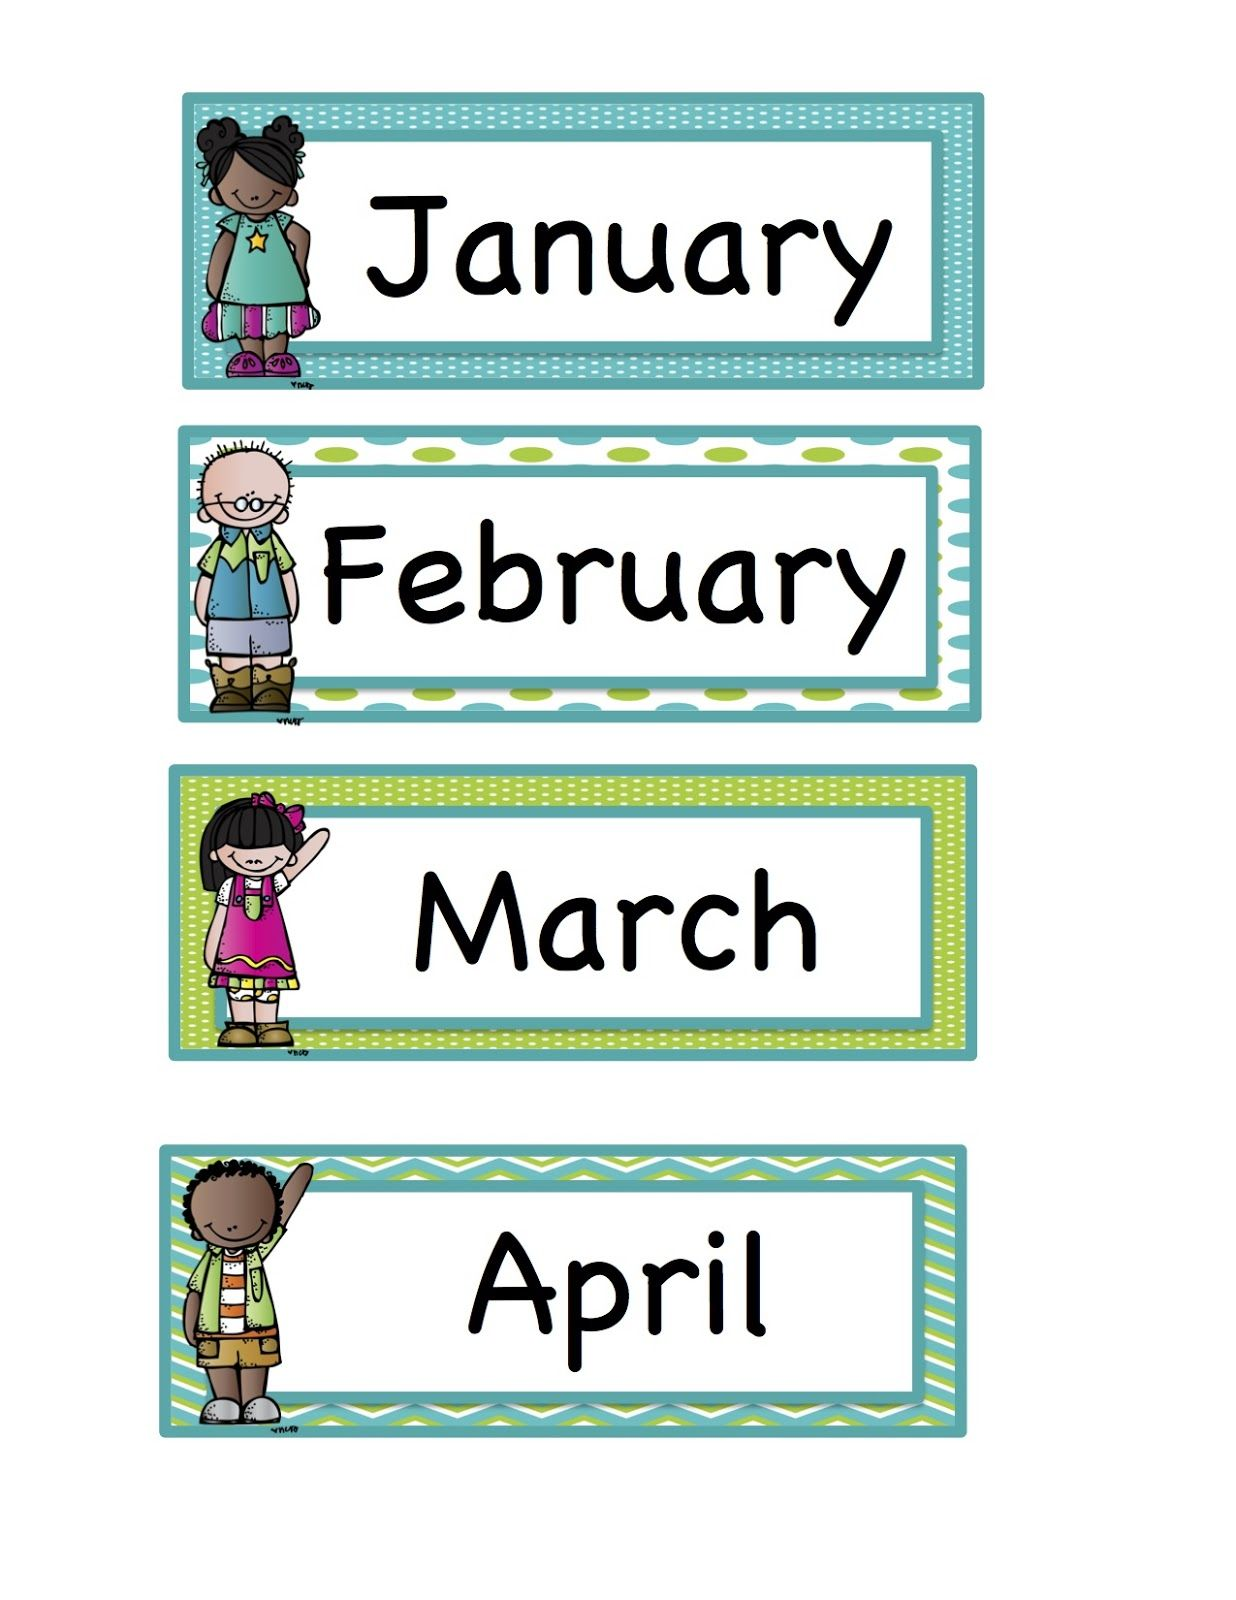 Preschool Printables: Calendar days and months | Preschool at Home ...